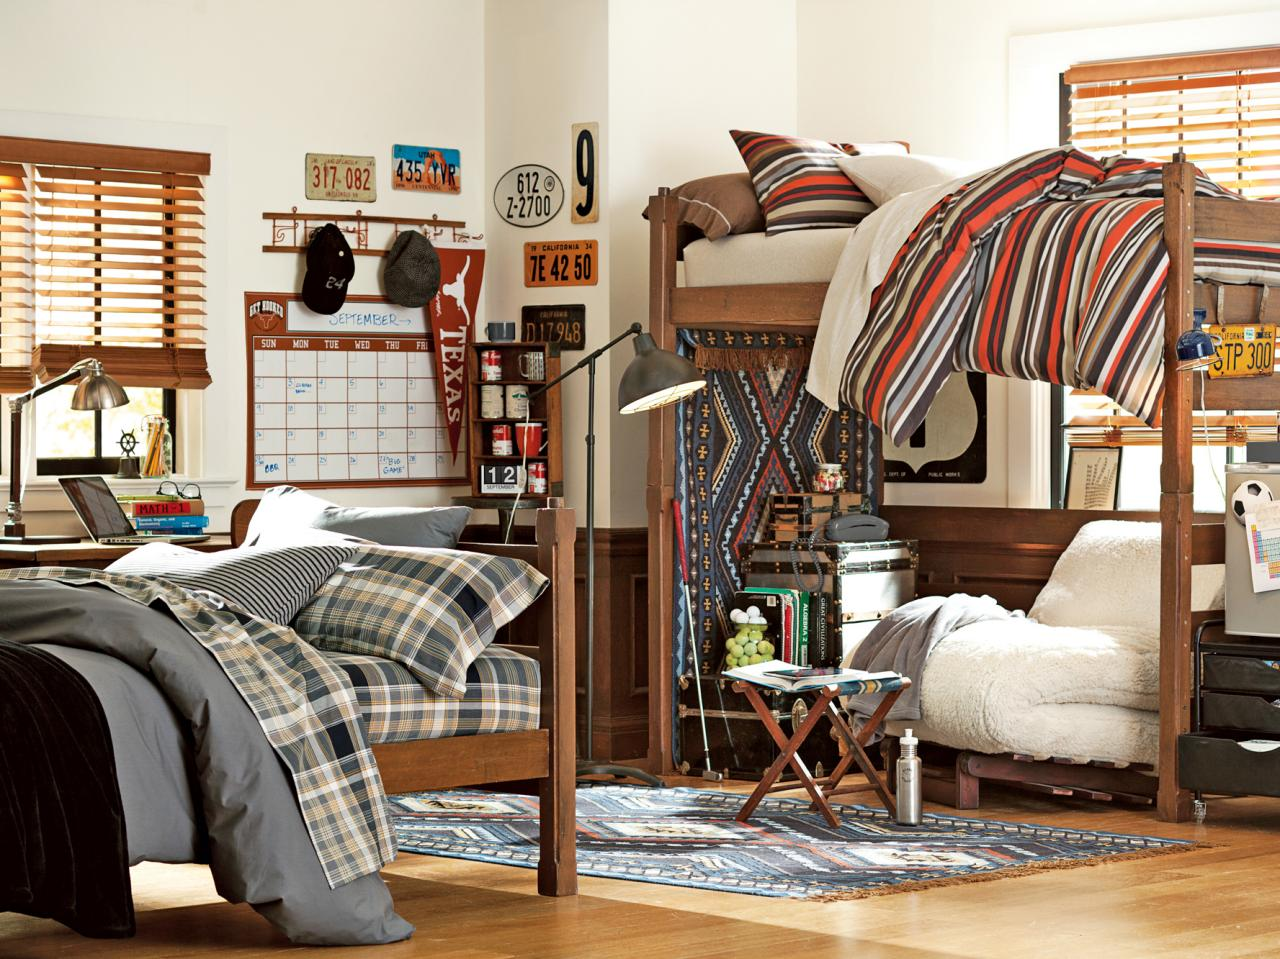 Dorm Room Storage, Seating, and Layout Checklist | HGTV